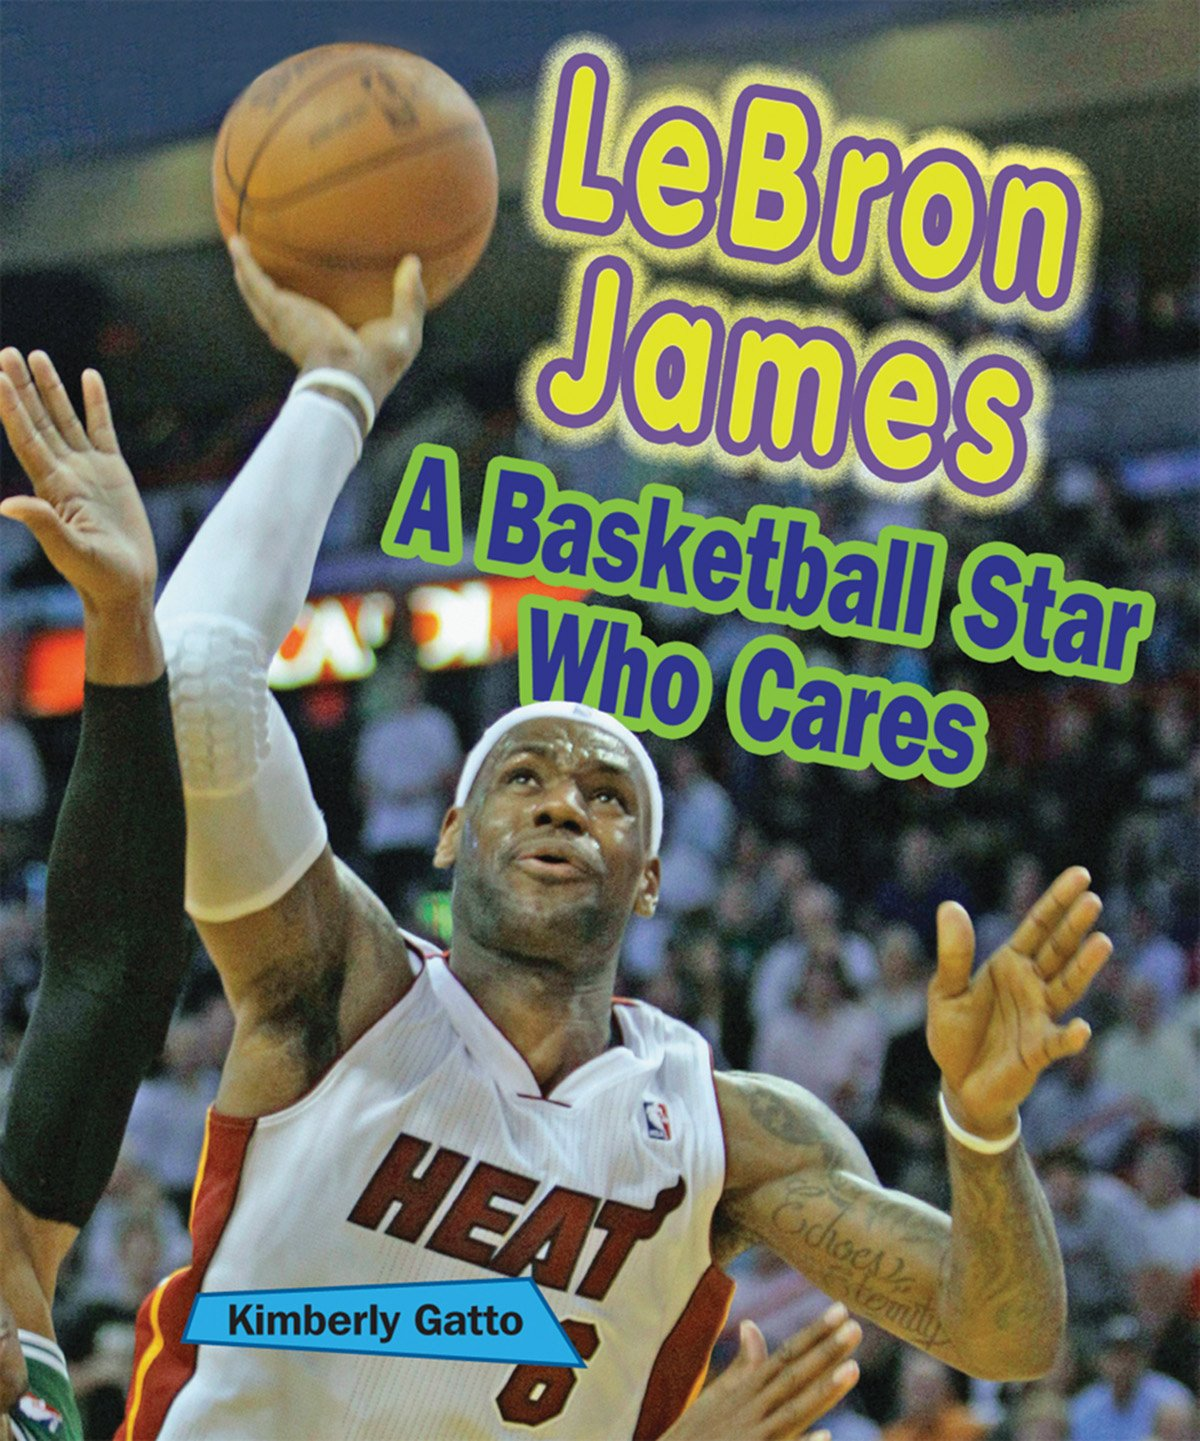 lebron-james-a-basketball-star-who-cares-sports-stars-who-care